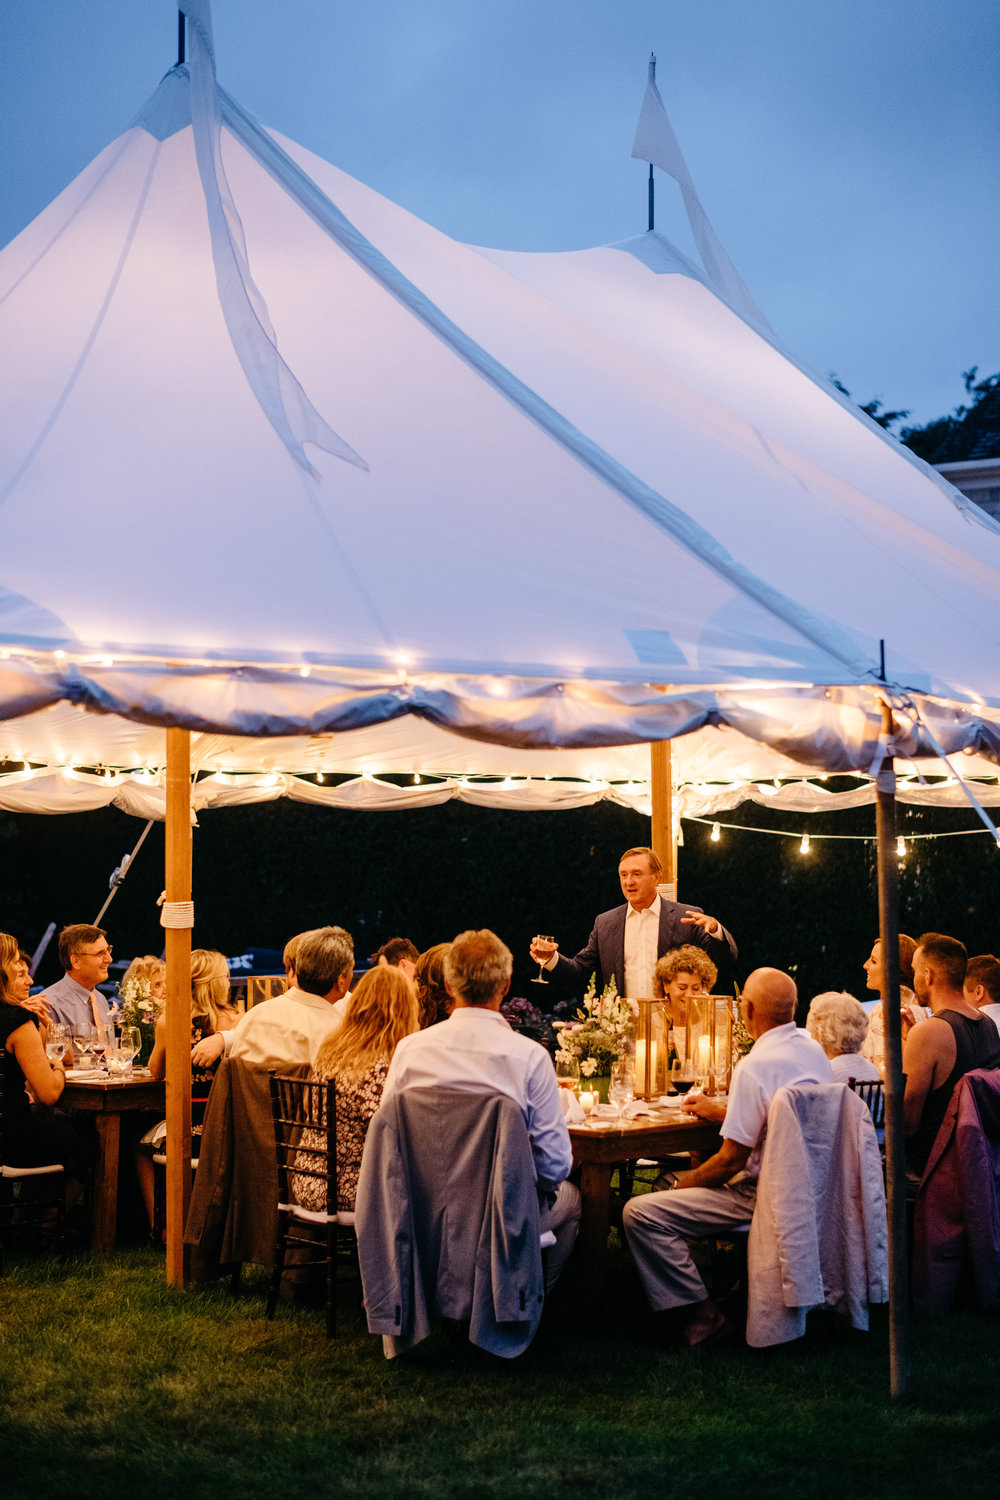 new england wedding tents and private small tents